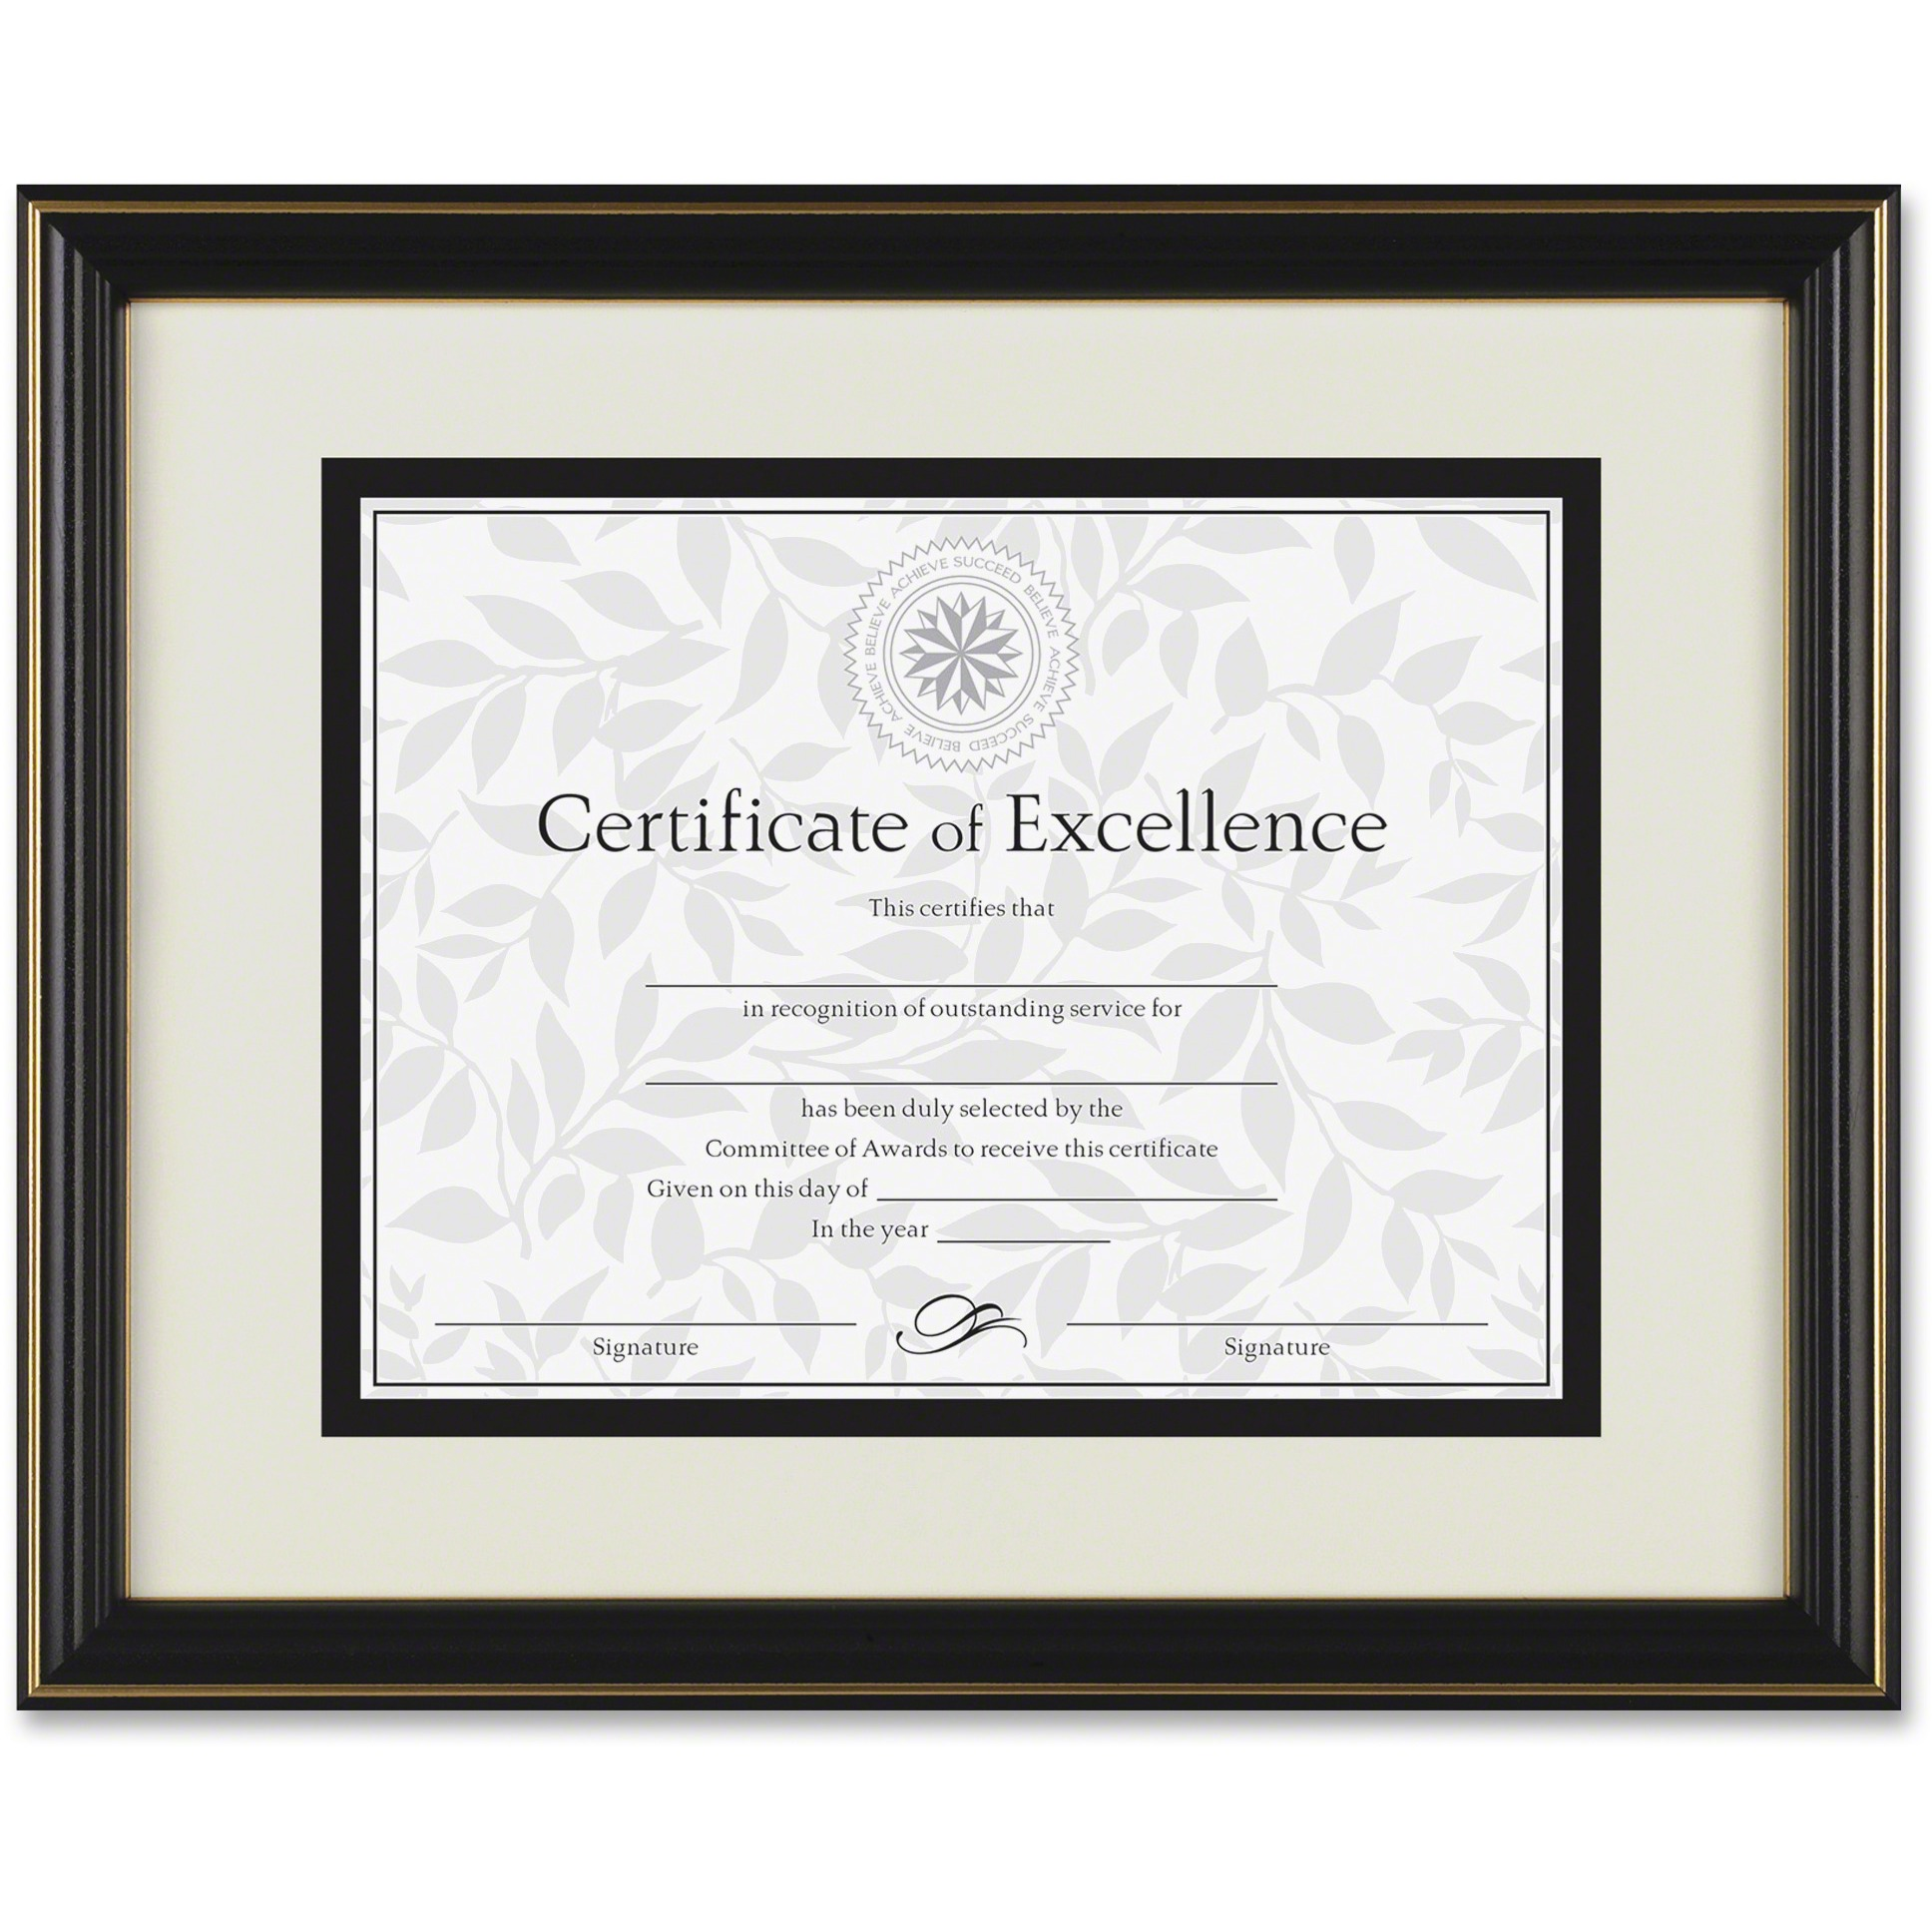 DAX Gold-Trimmed Document Frame, Wood, 11 x 14, 8 1/2 x 11, Black